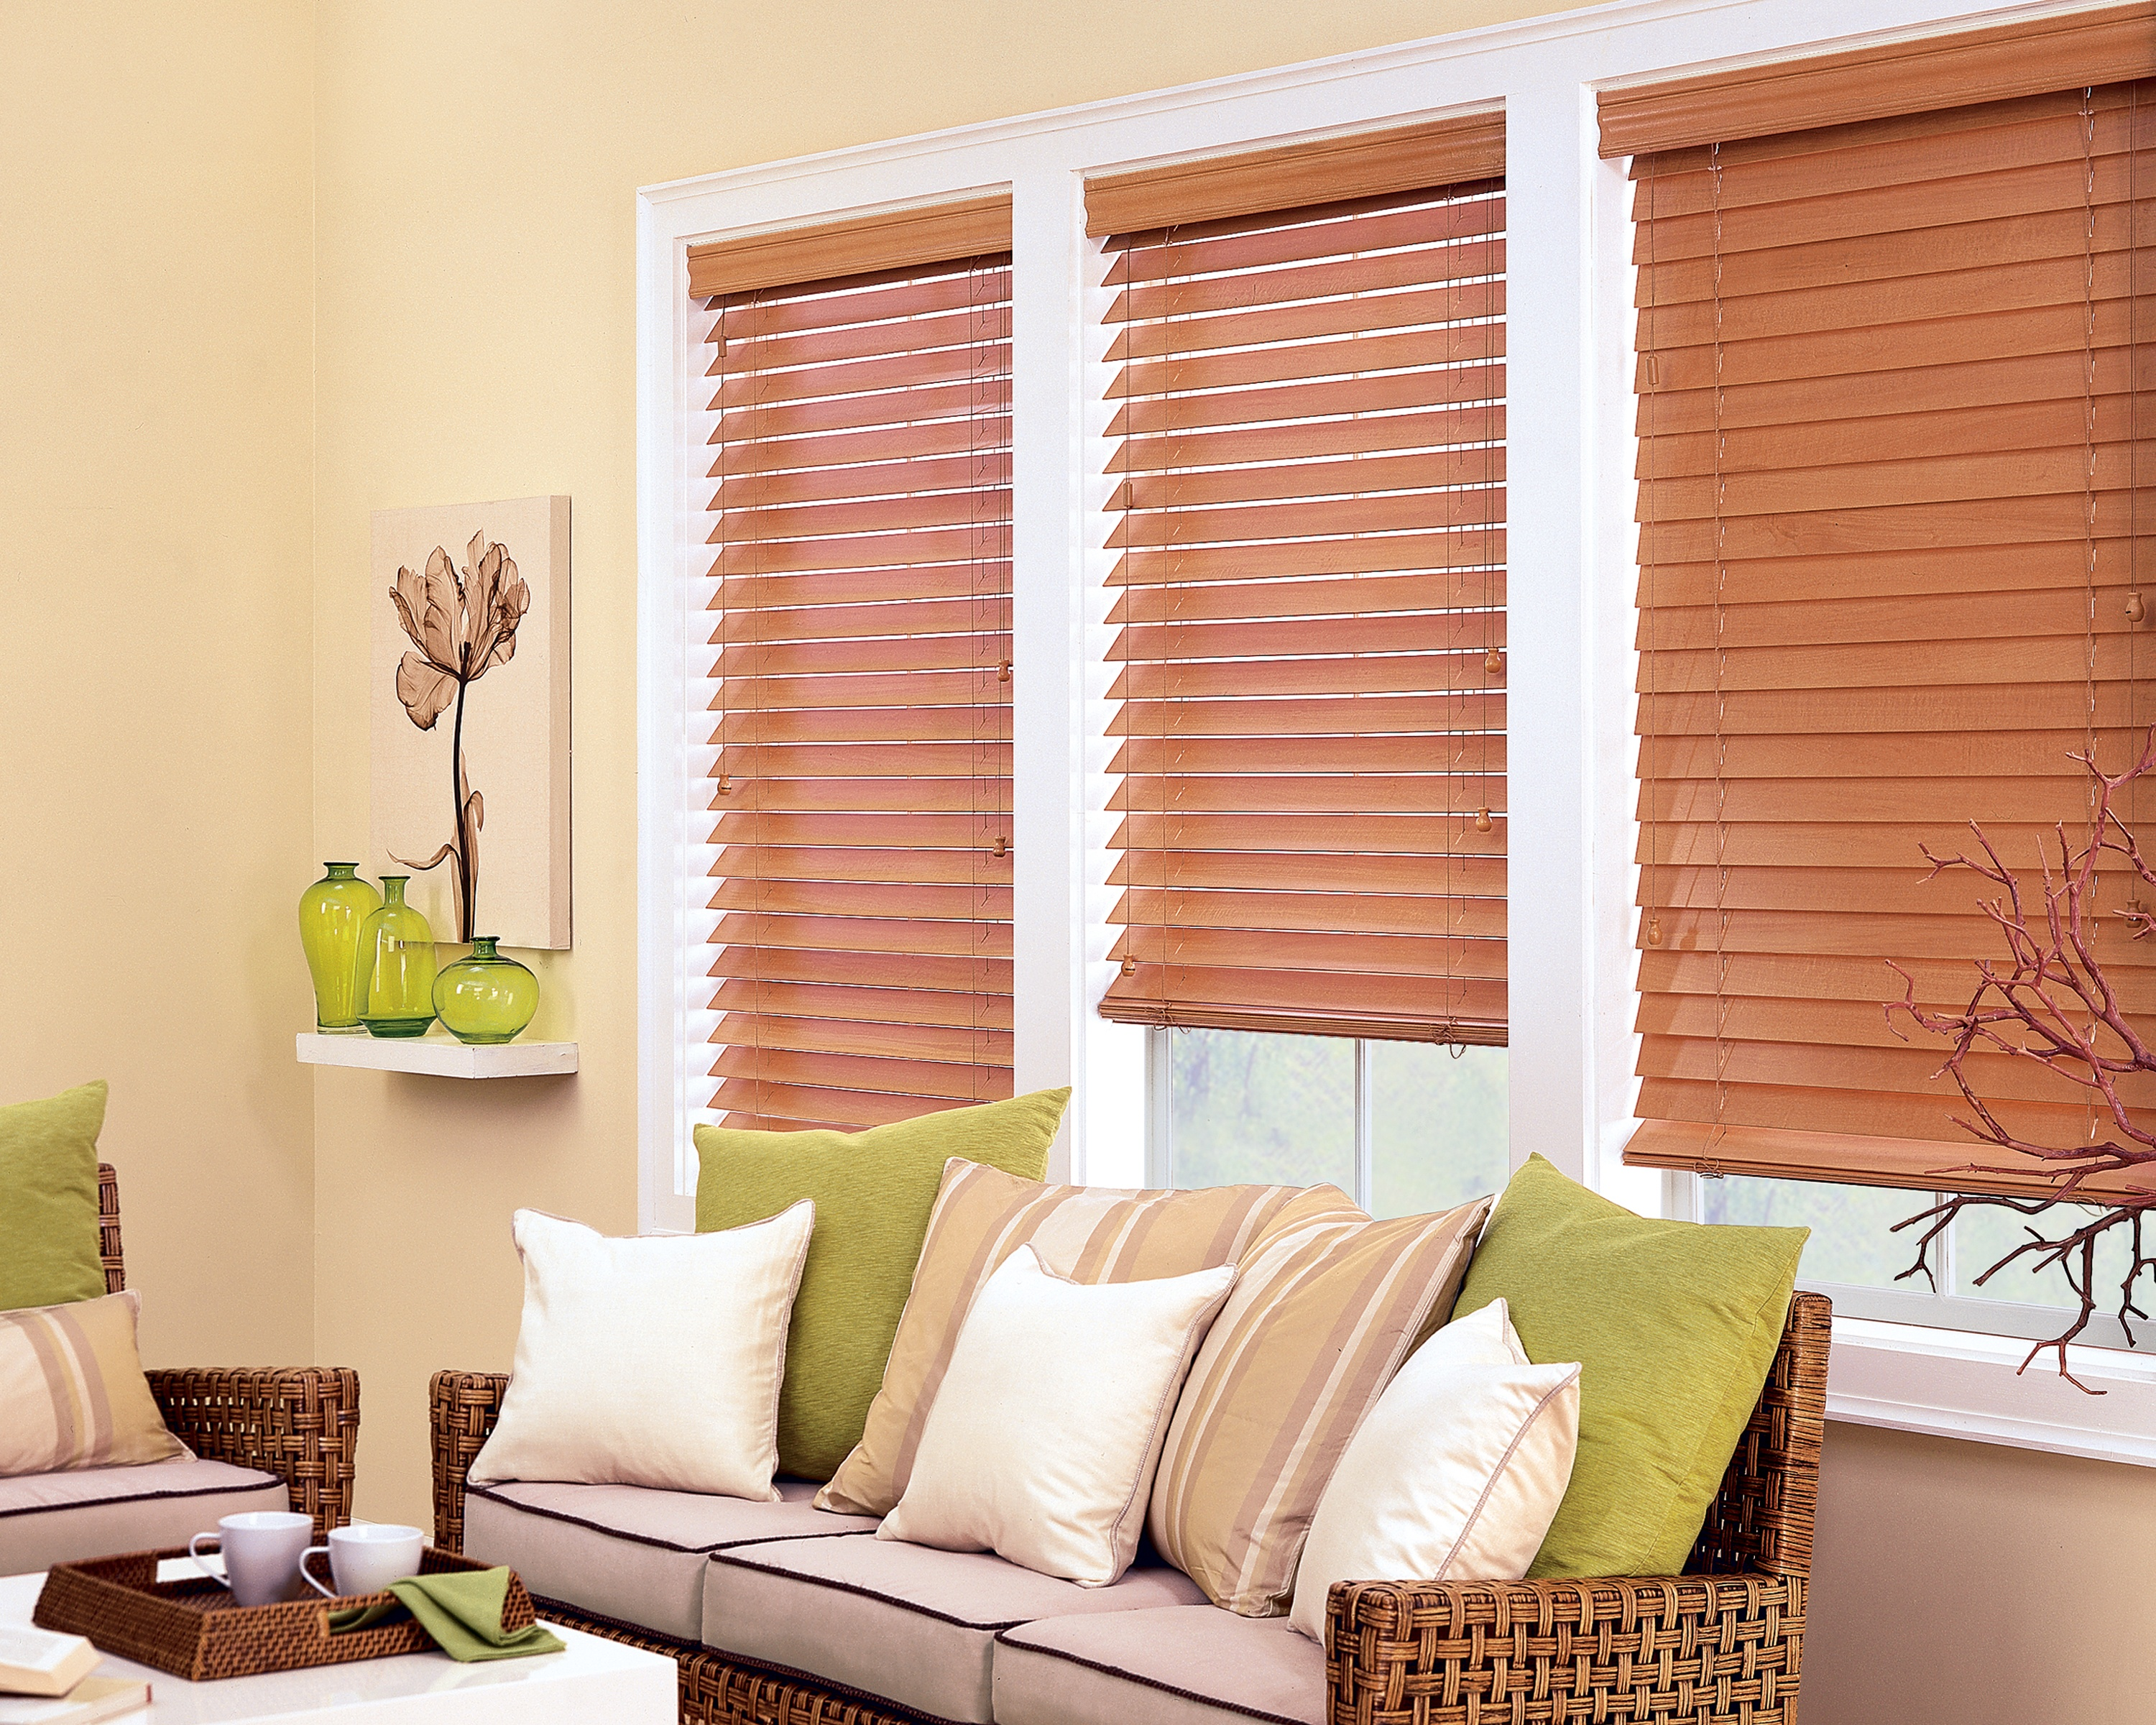 pirouette position img savalan high down window decor open zebra in lite and shades ambio blinds banded